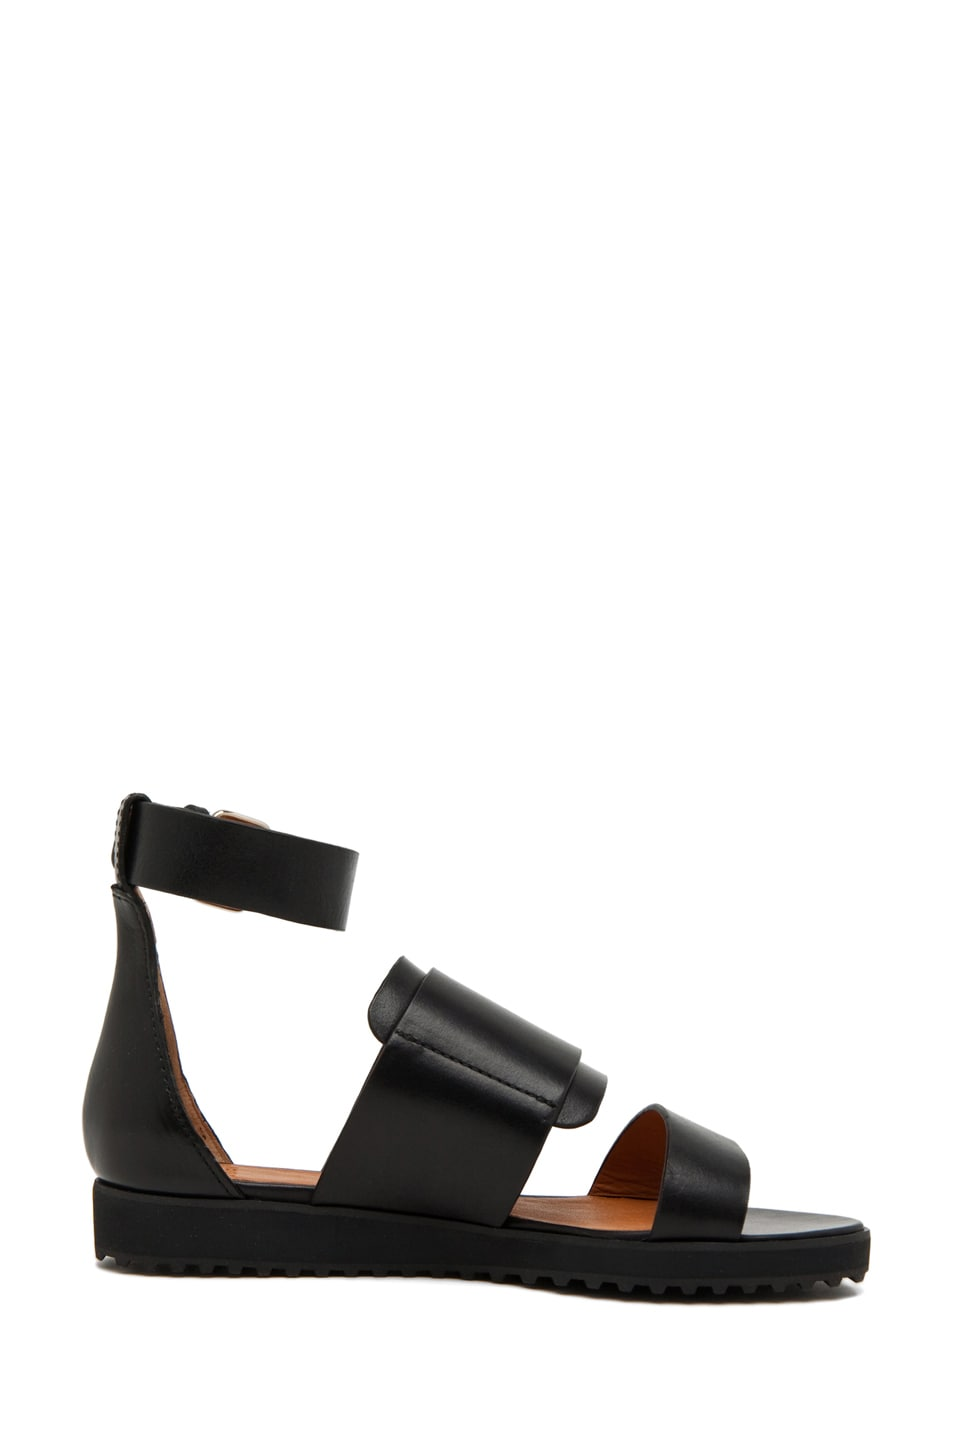 Image 5 of GIVENCHY Biker Sandal in Black